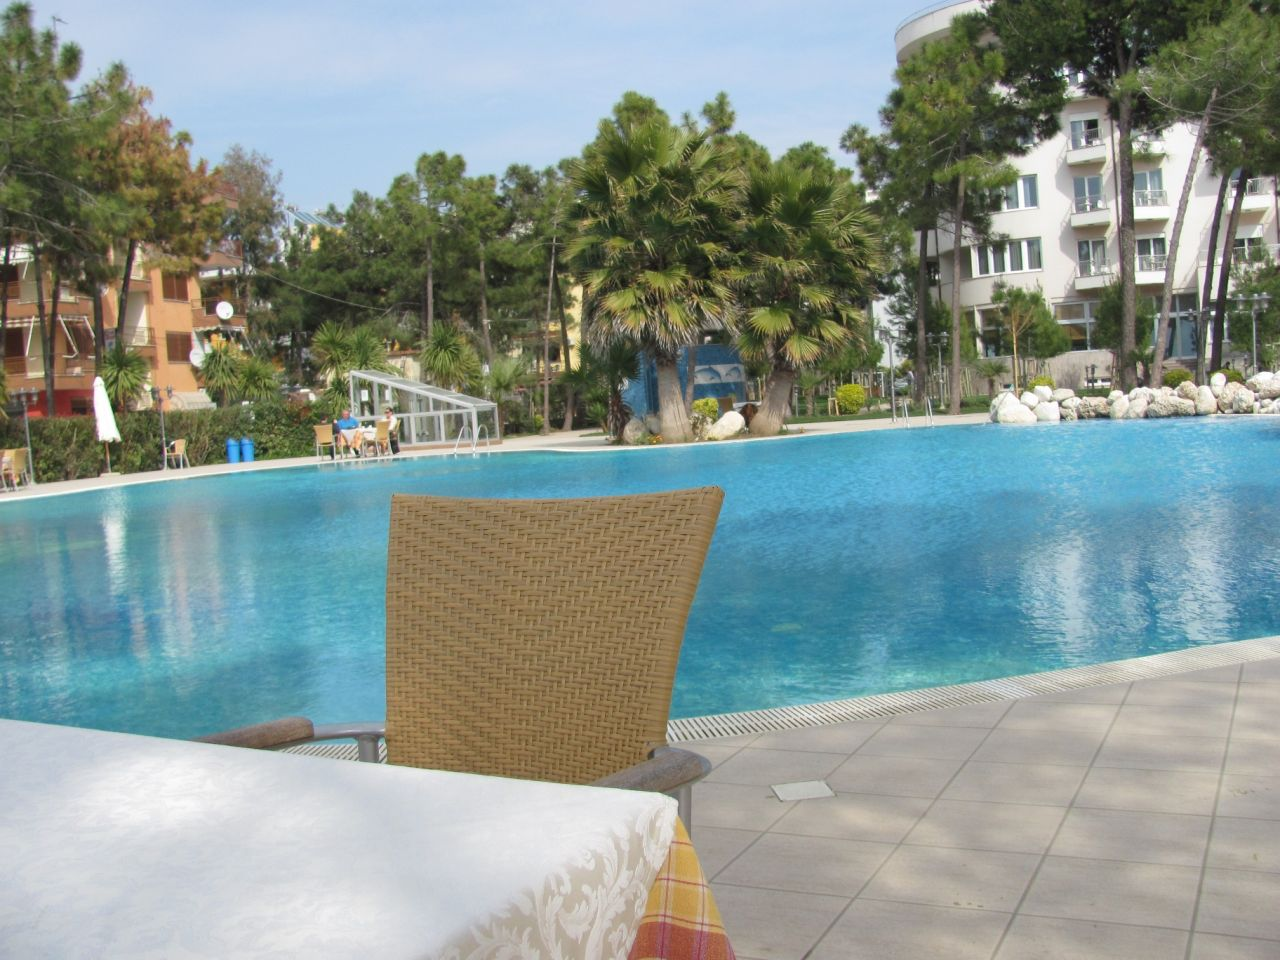 Hotel Apartments in Albania. Rent Apartments in Durres